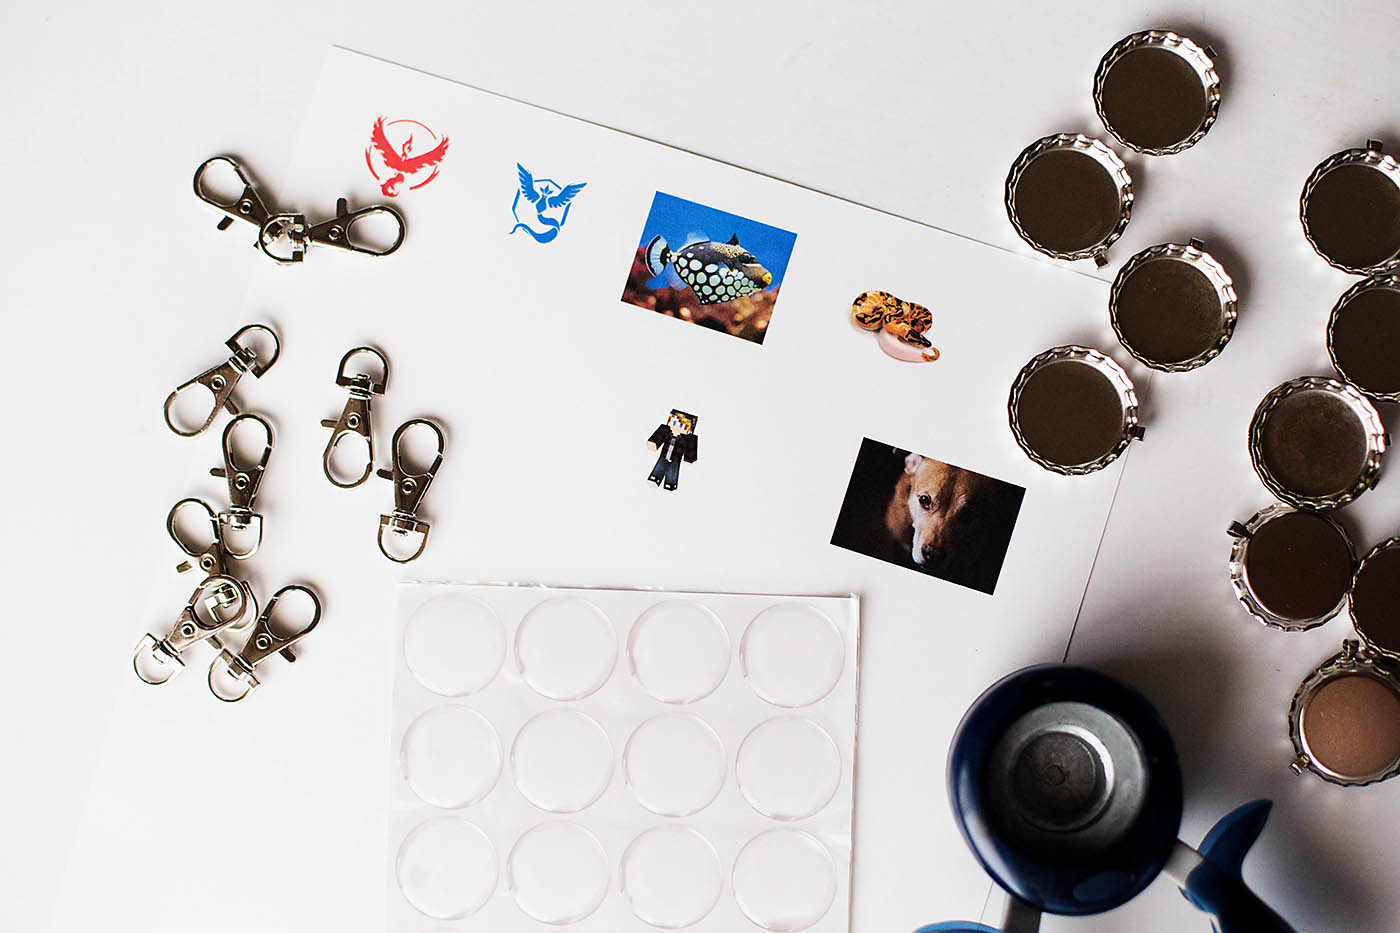 DIY backpack tags or keychains